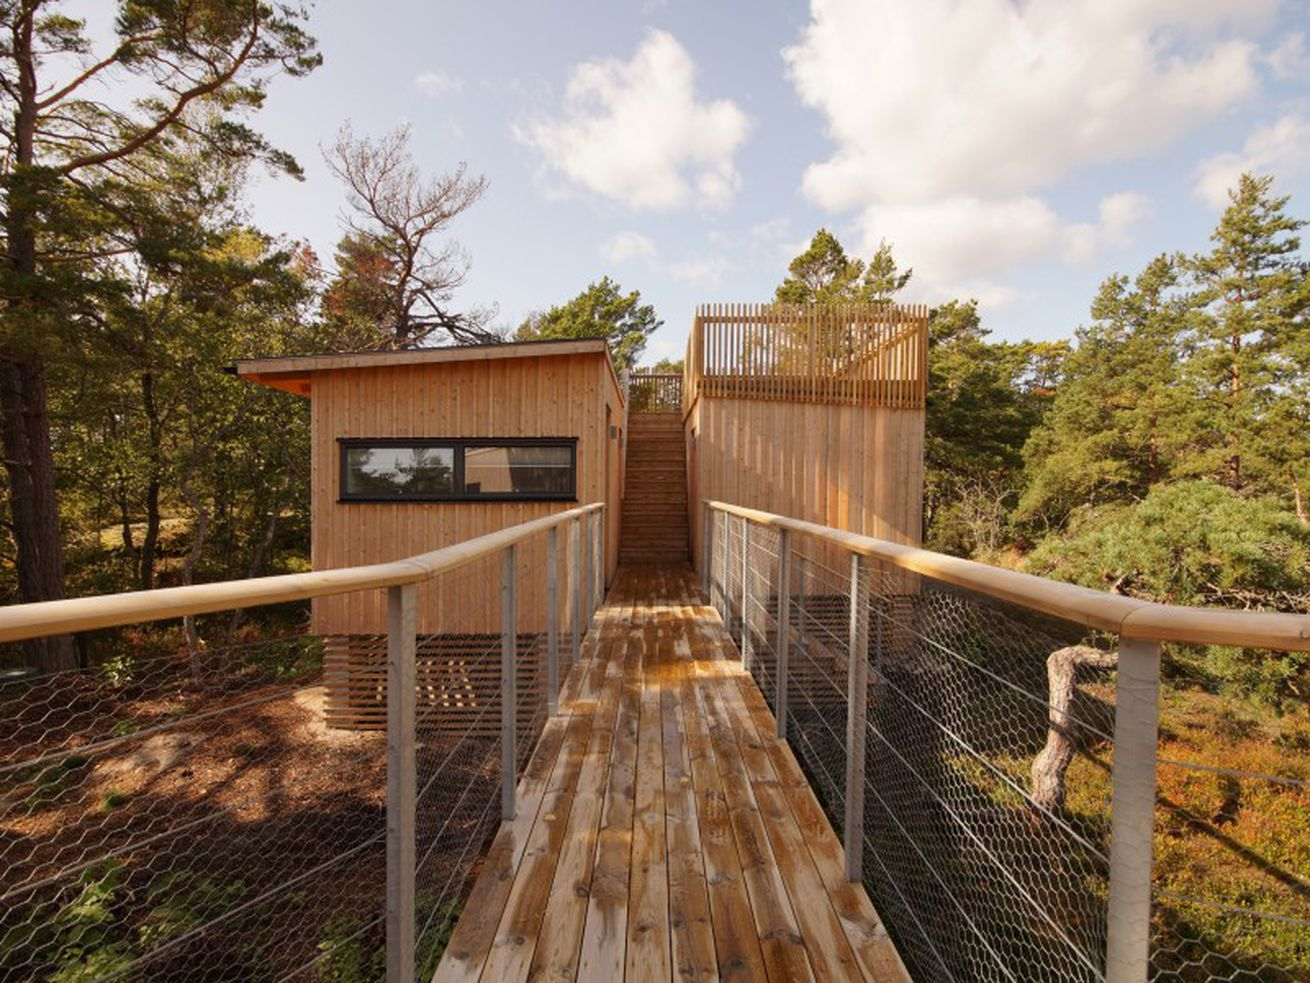 Small wooden house on deck that's connected to a walkway.